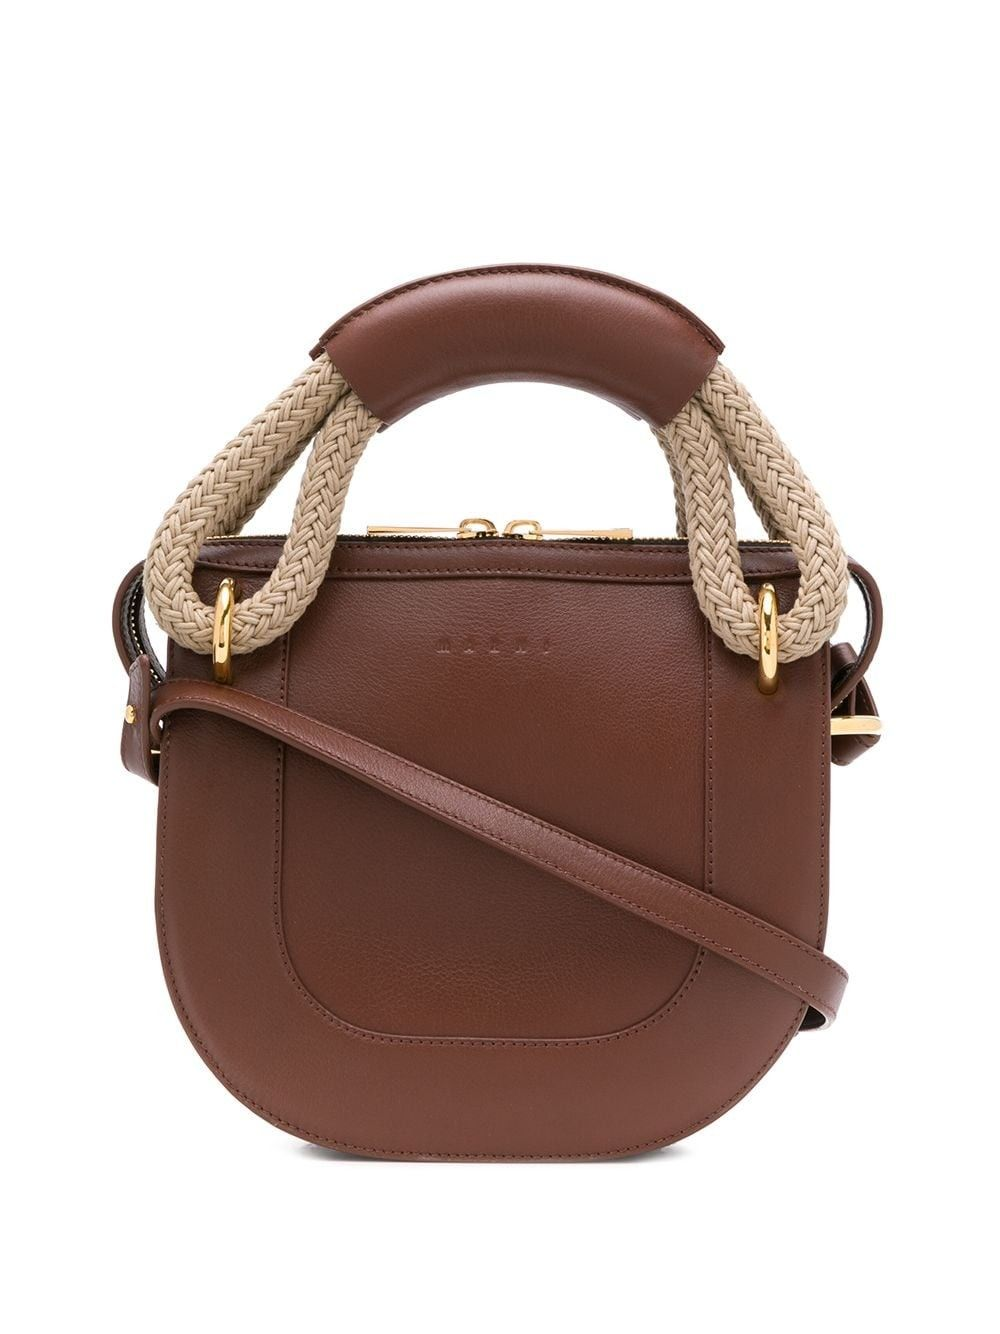 Bonnie leather and rope handle handbag